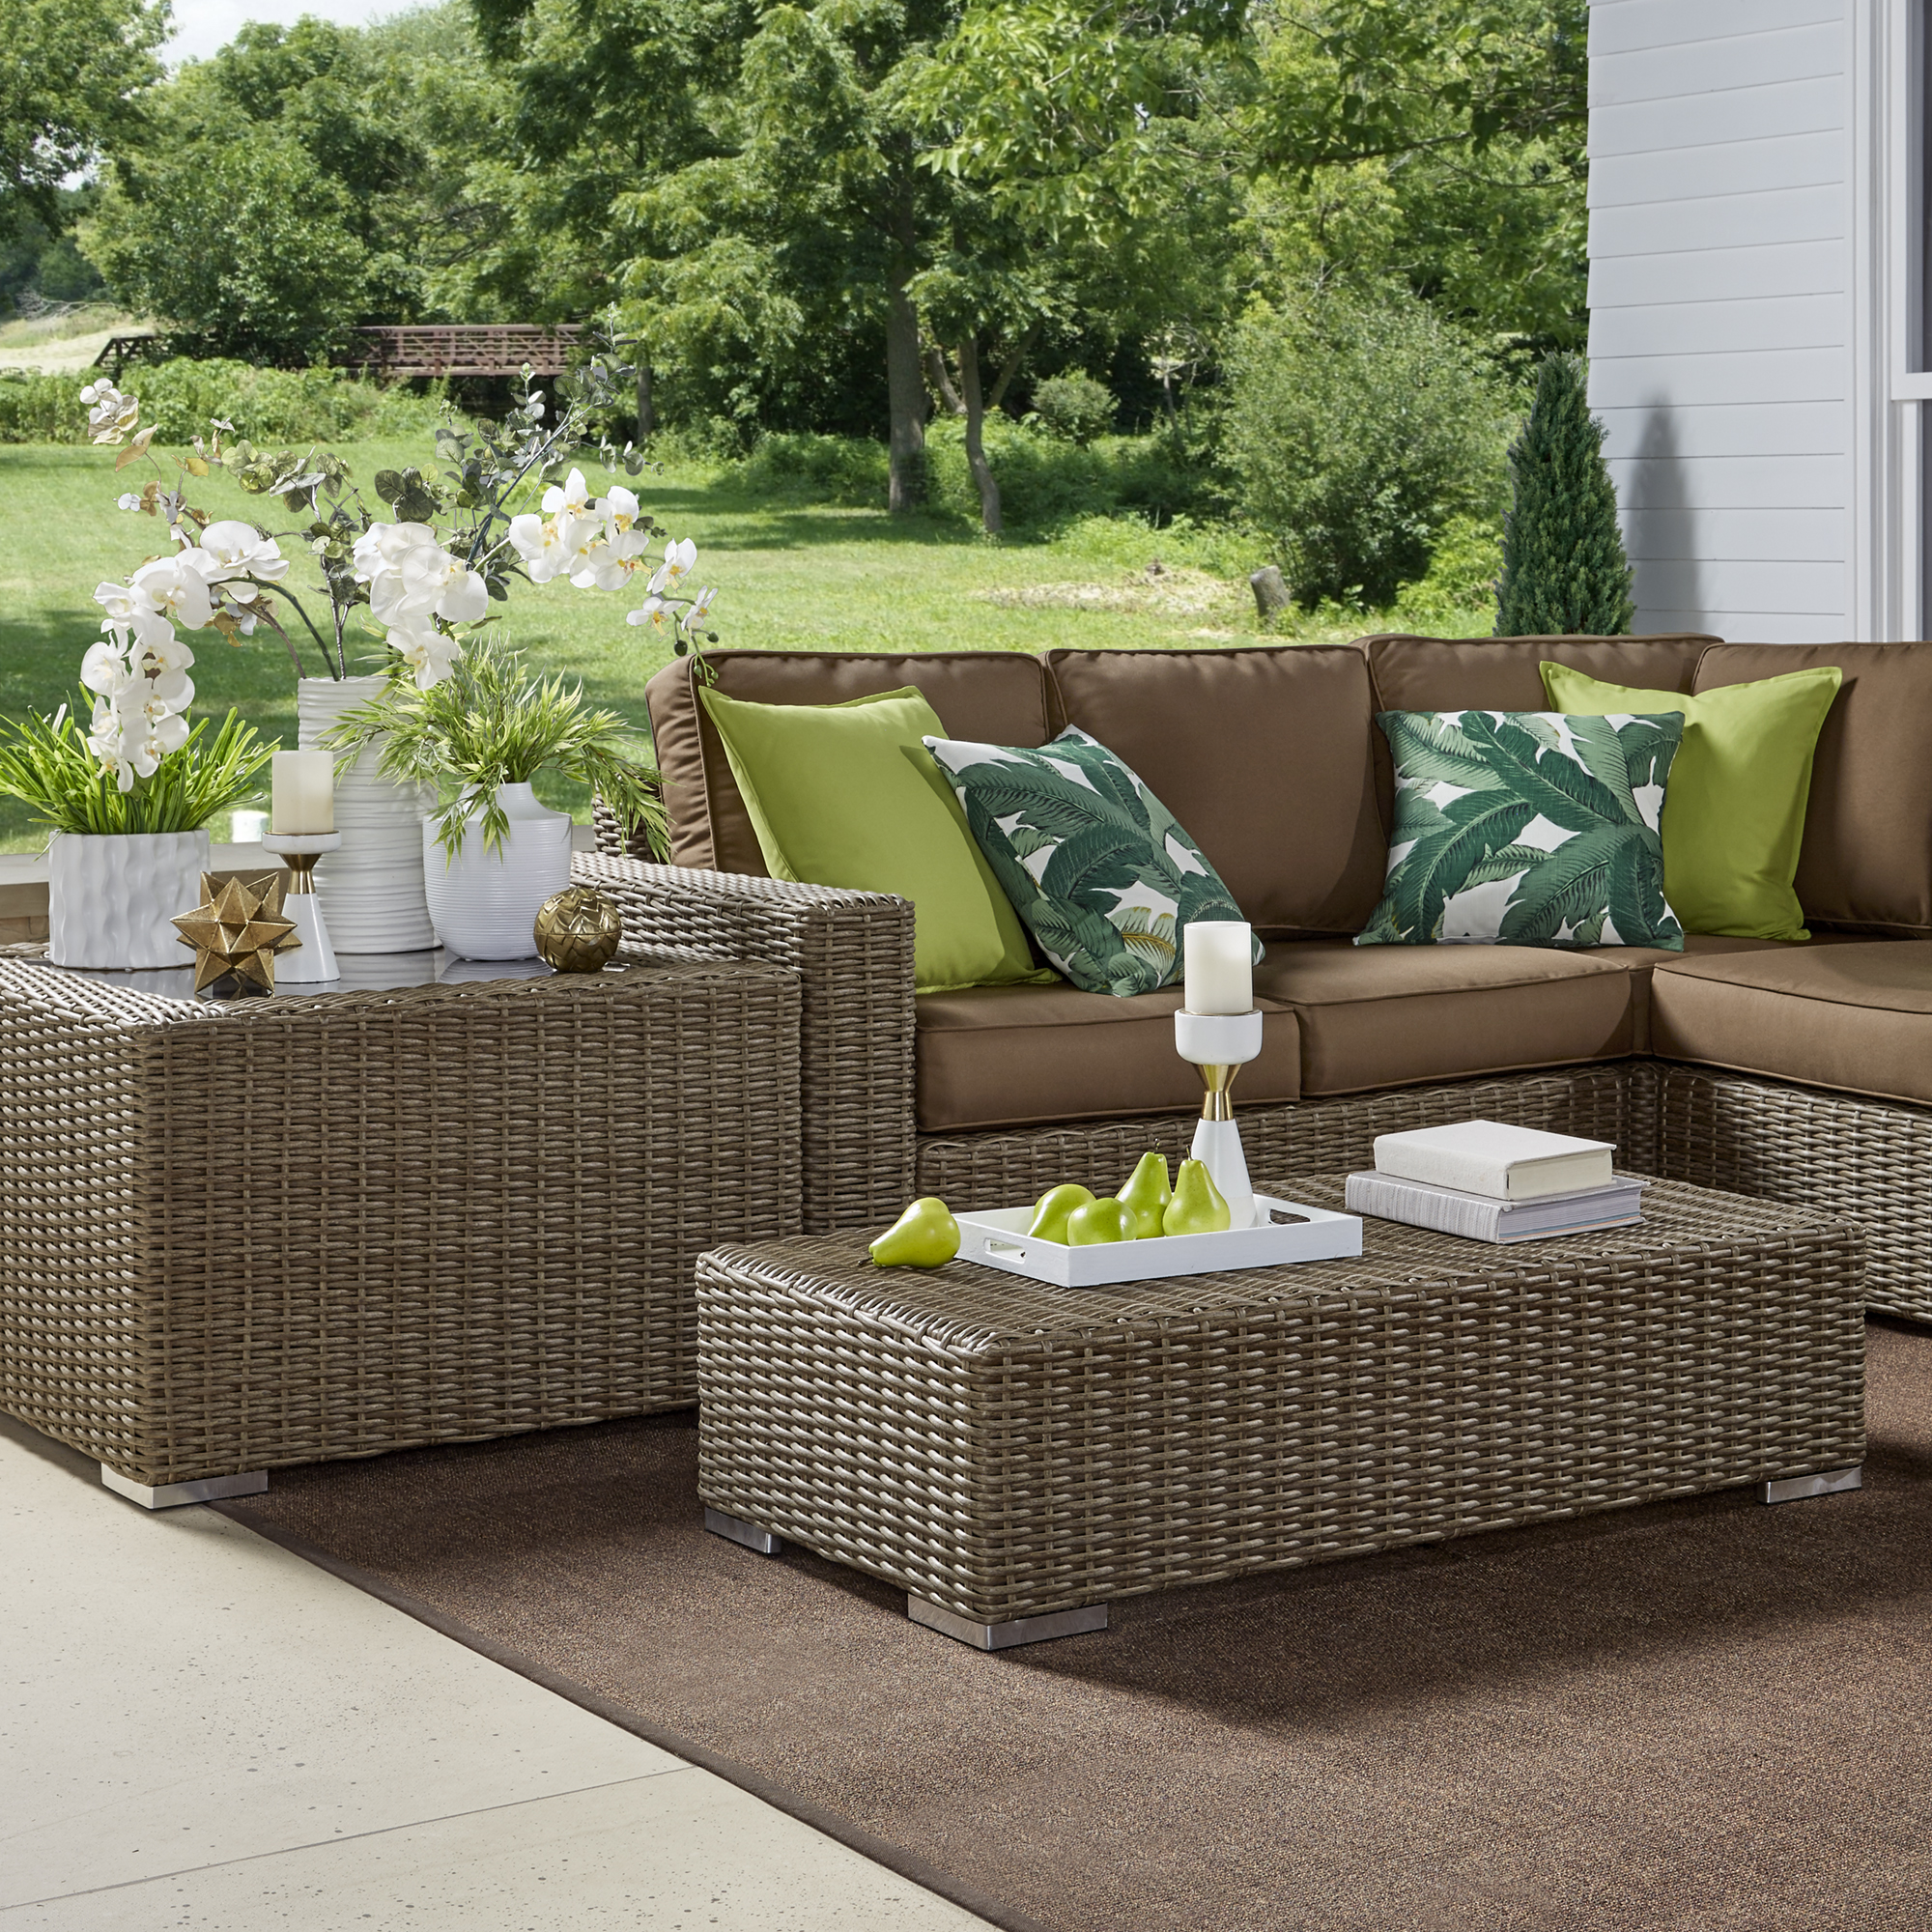 Soak Up Some Sun with the Perfect Patio